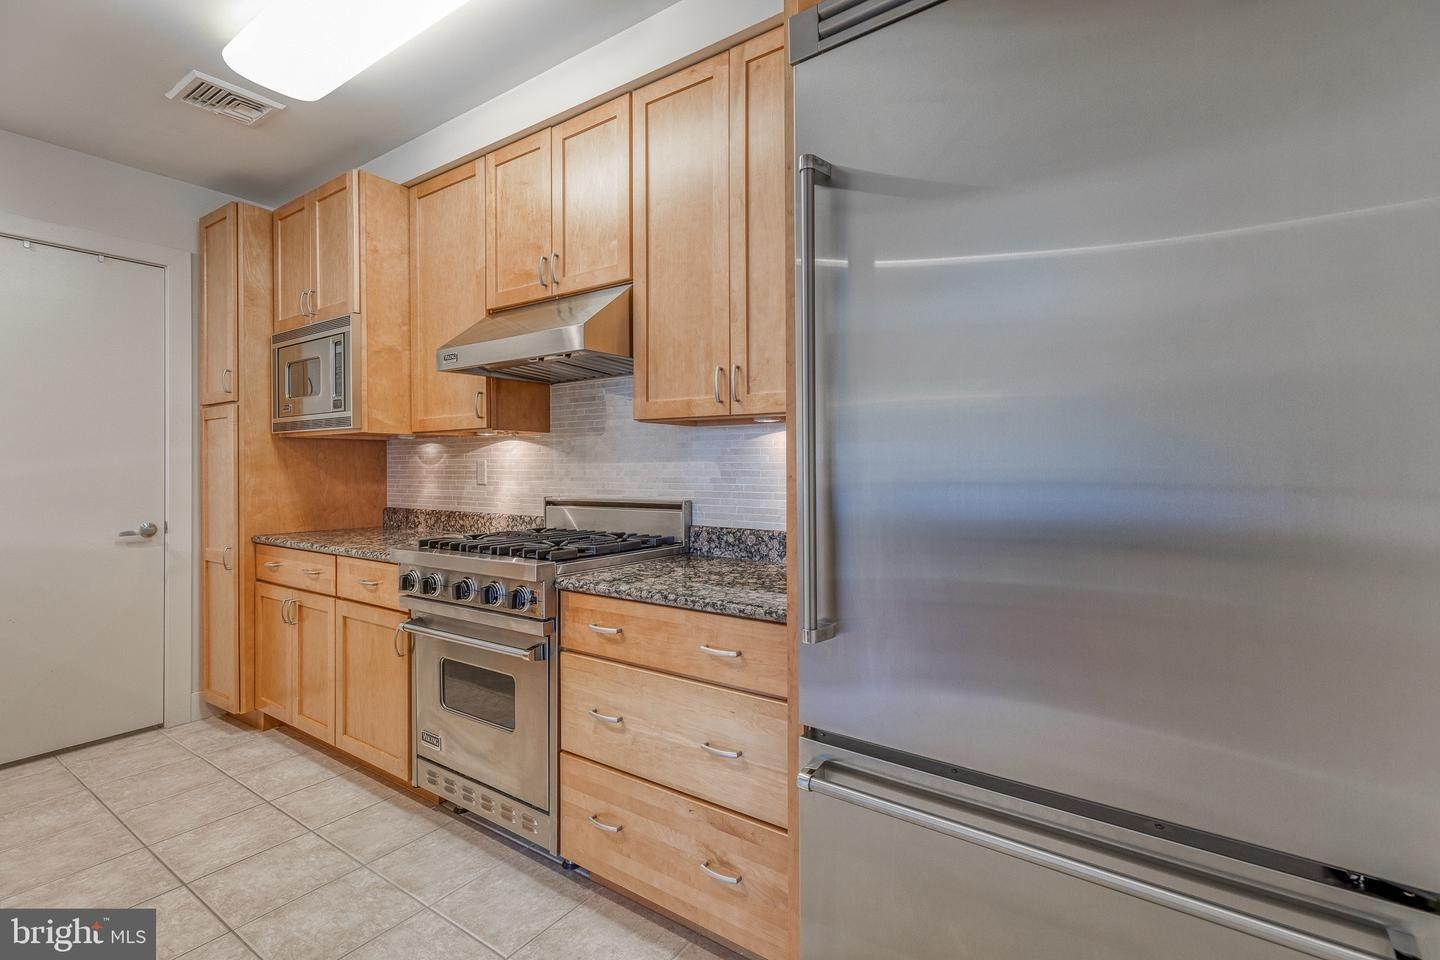 13. Apartments for Sale at 23 S 23RD ST #5B Philadelphia, Pennsylvania 19103 United States